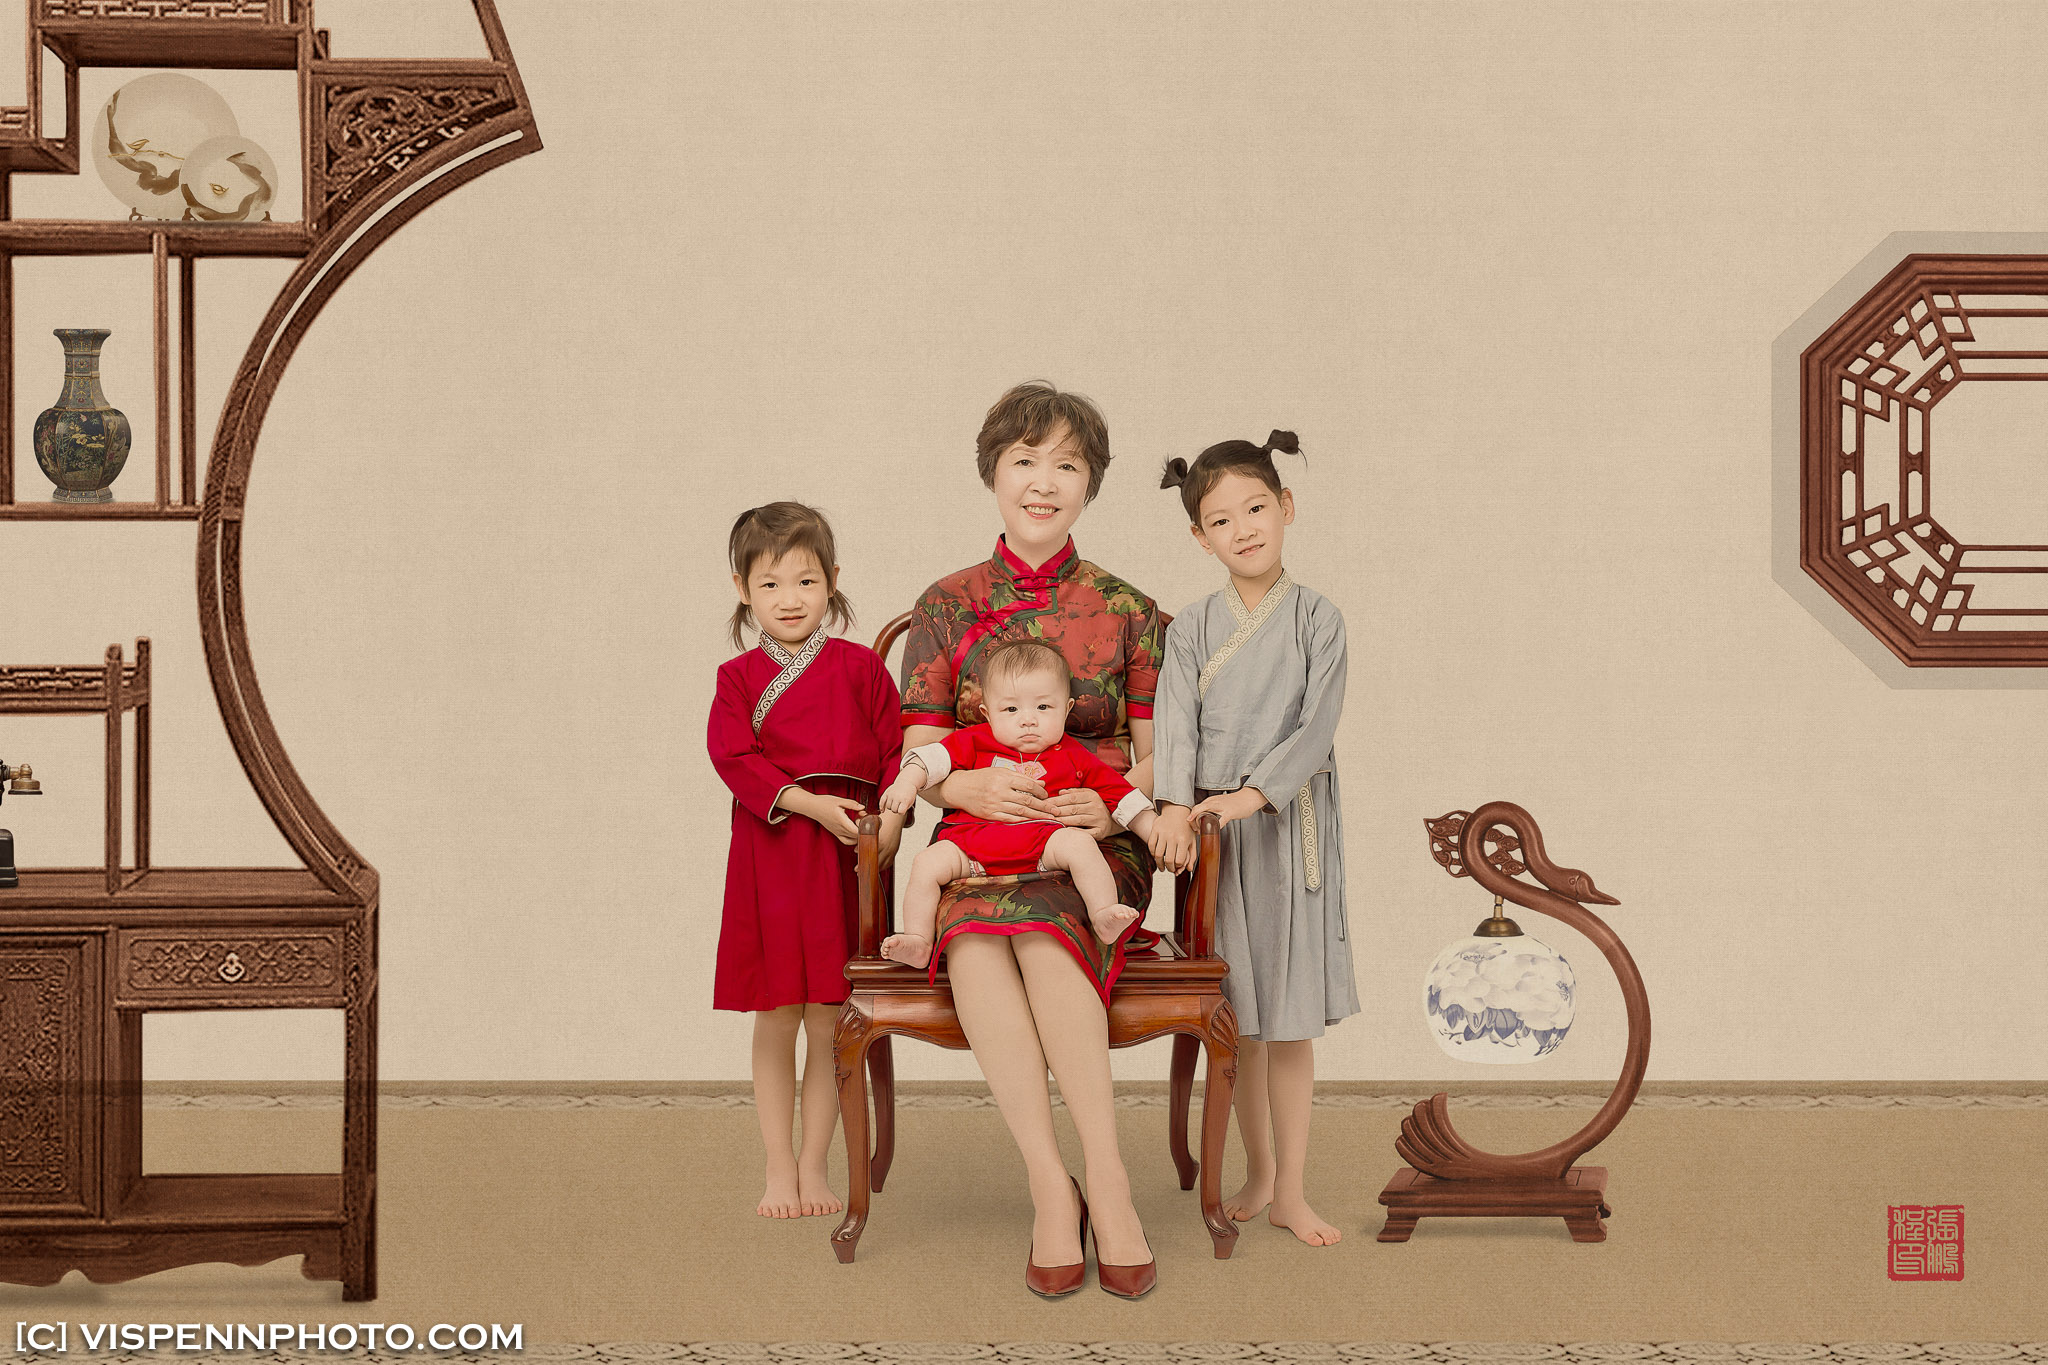 Melbourne Newborn Baby Family Photo BaoBao VISPENN 墨尔本 儿童 宝宝 百天照 满月照 孕妇照 全家福 KIDS VISPENN TracyCheng 2440